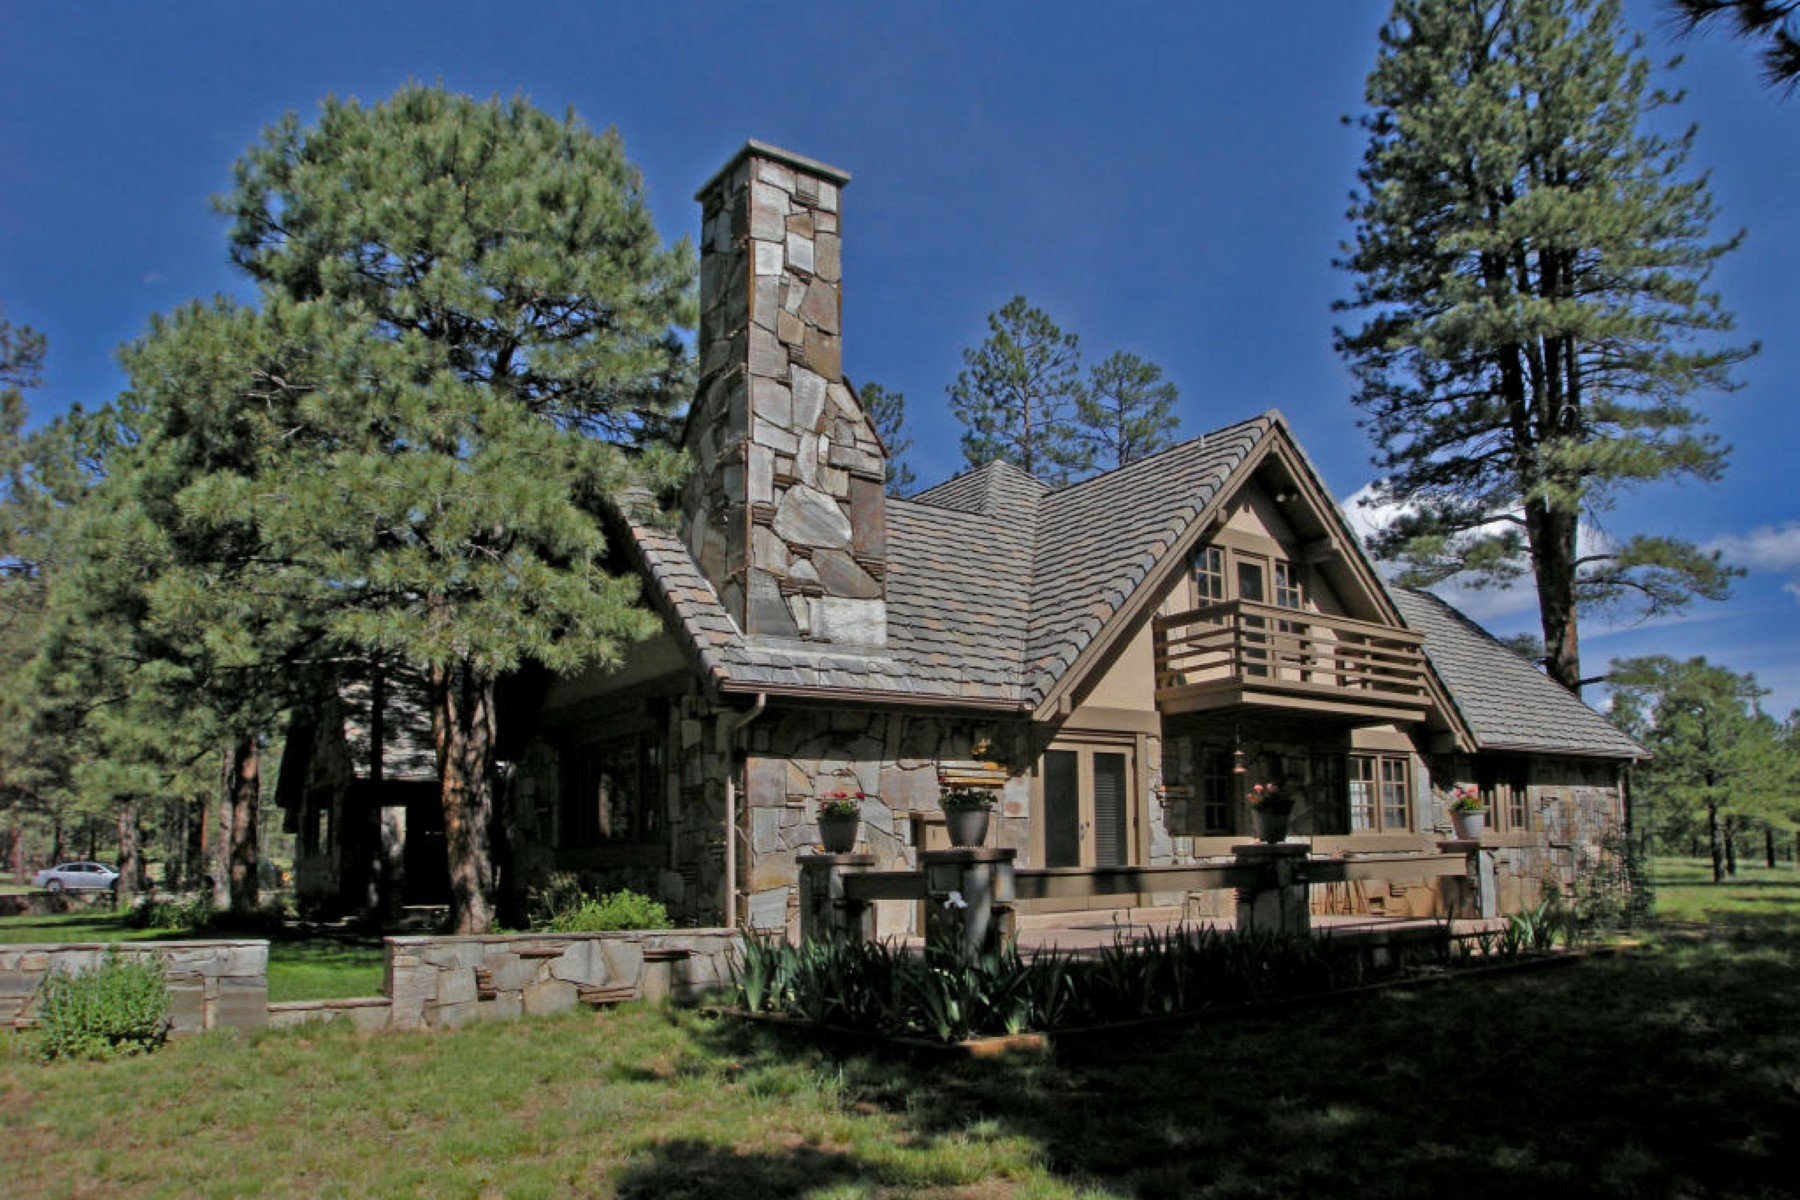 Single Family Home for Sale at Extraordinary Land with an exceptional home situated on 26 acres. 4100 Hidden Hollow RD Flagstaff, Arizona 86001 United States